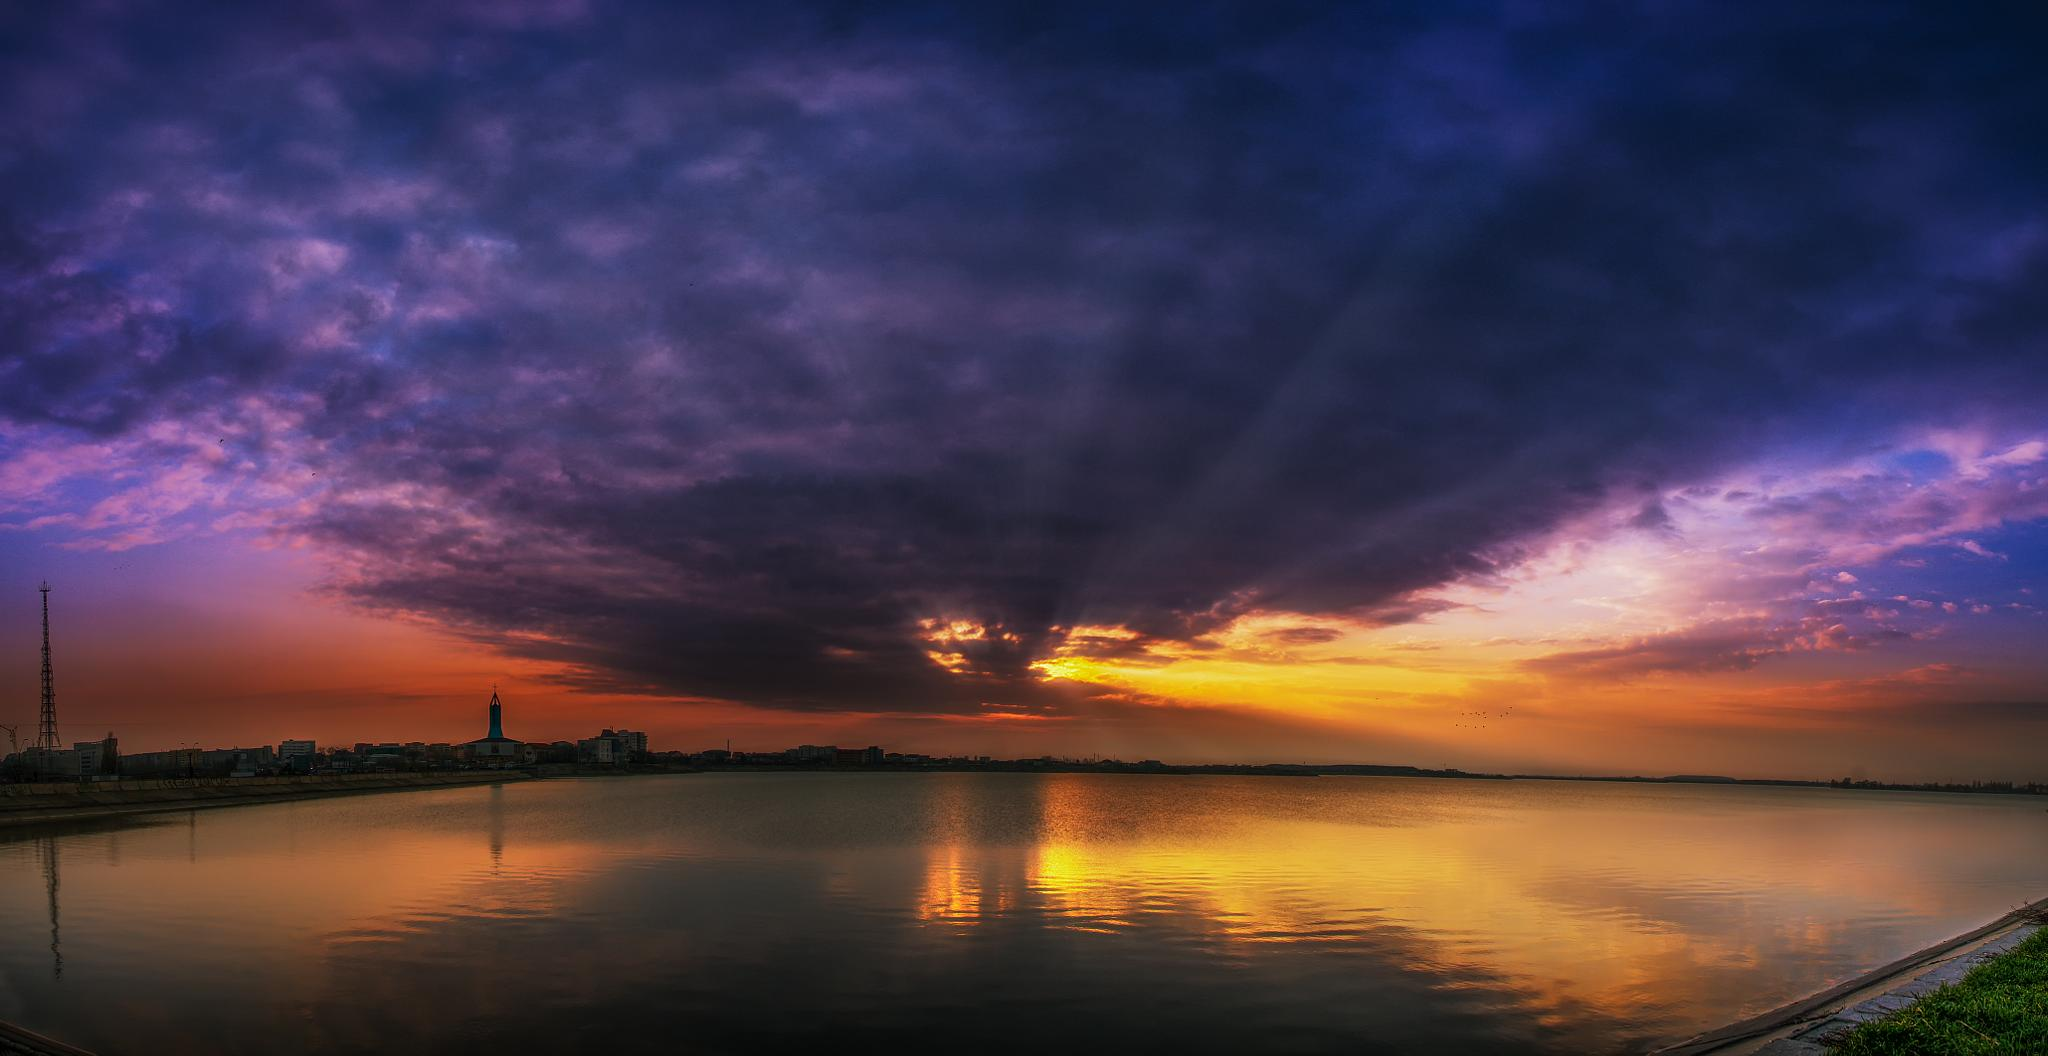 Sunset Beneath the Clouds by Ionut Petrea